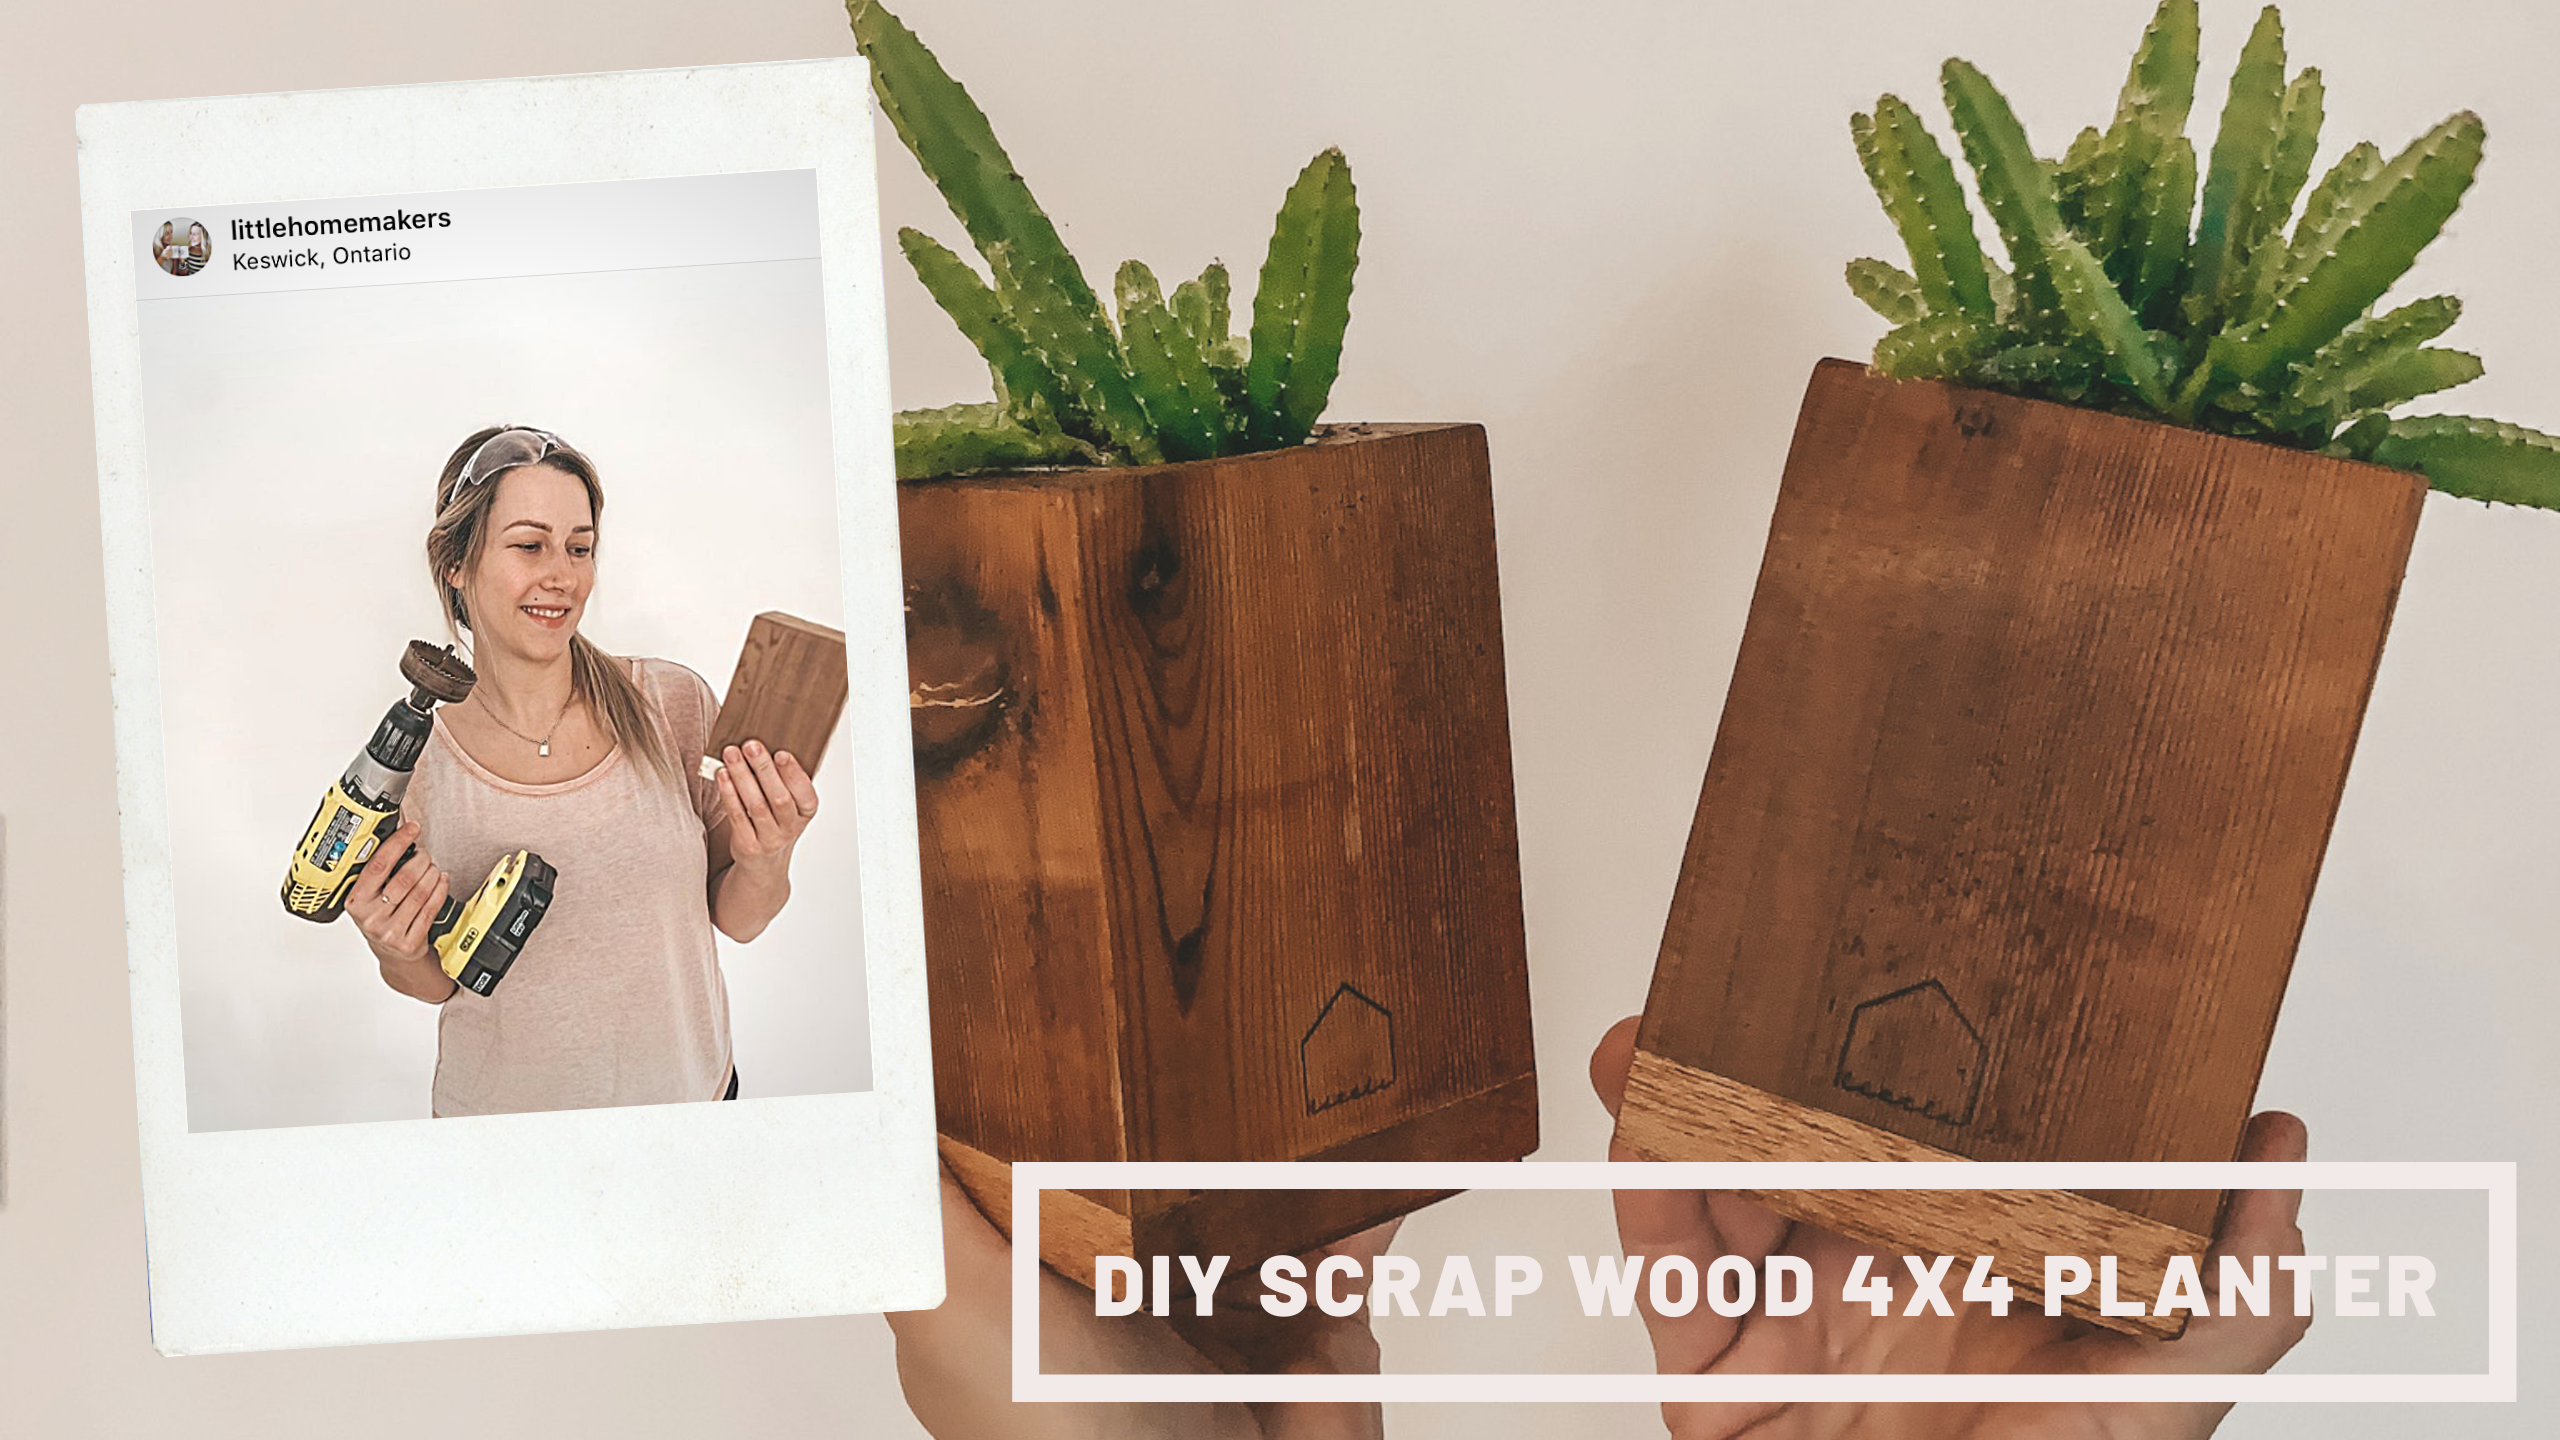 Just a few households tools and you can turn your scrap 4x4 posts into these adorable little planters! Follow us on IG for more #woodworking  inspo #howto #diyhomedecor #handmadehomedecor  #scrapwoodprojects #diyplanter